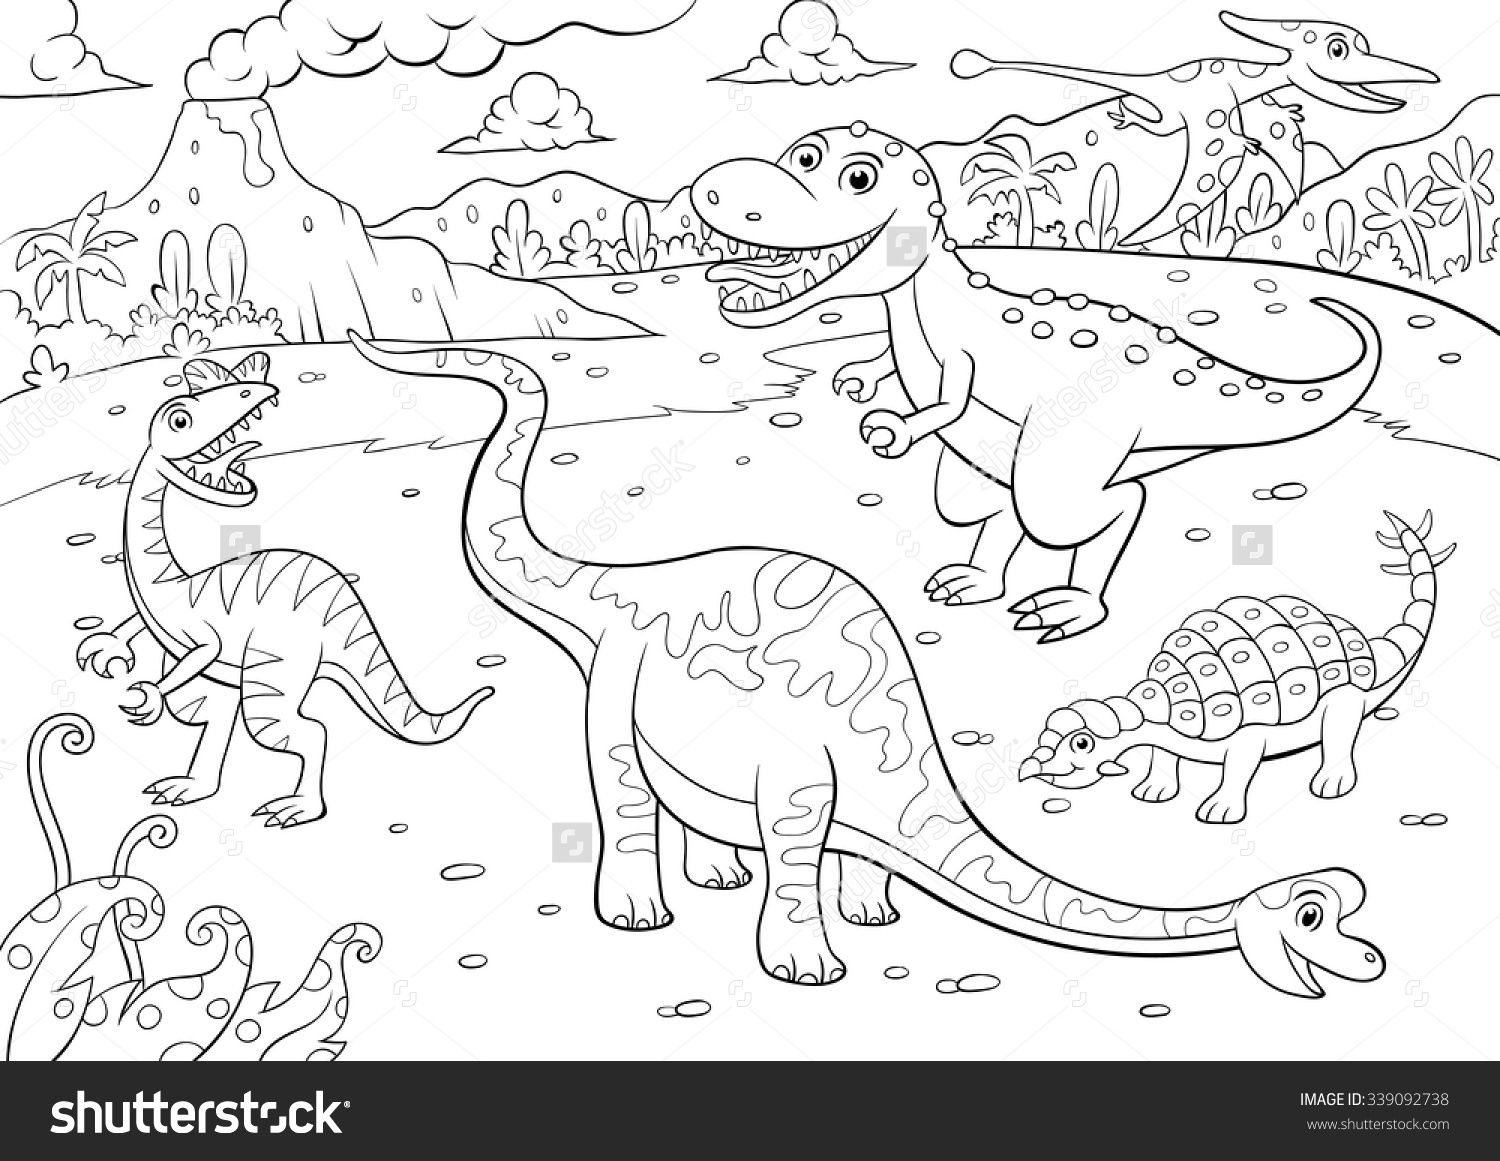 Illustration Of Cute Dinosaurs Cartoon For Coloring Eps10 File